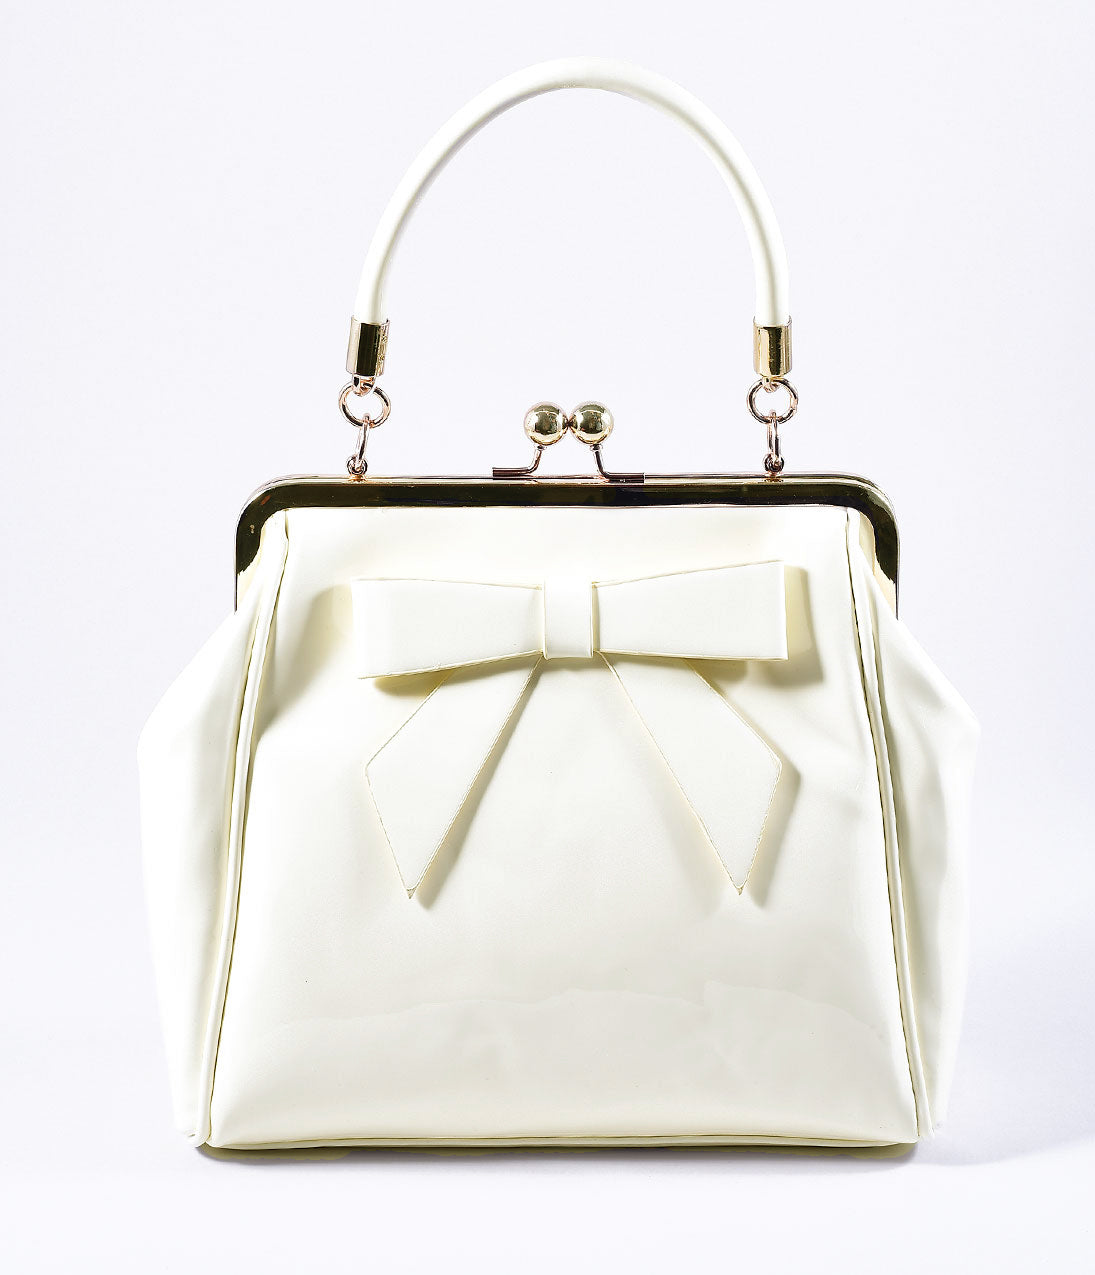 Vintage & Retro Handbags, Purses, Wallets, Bags Banned Cream Patent Leatherette Top Frame Handbag $66.00 AT vintagedancer.com